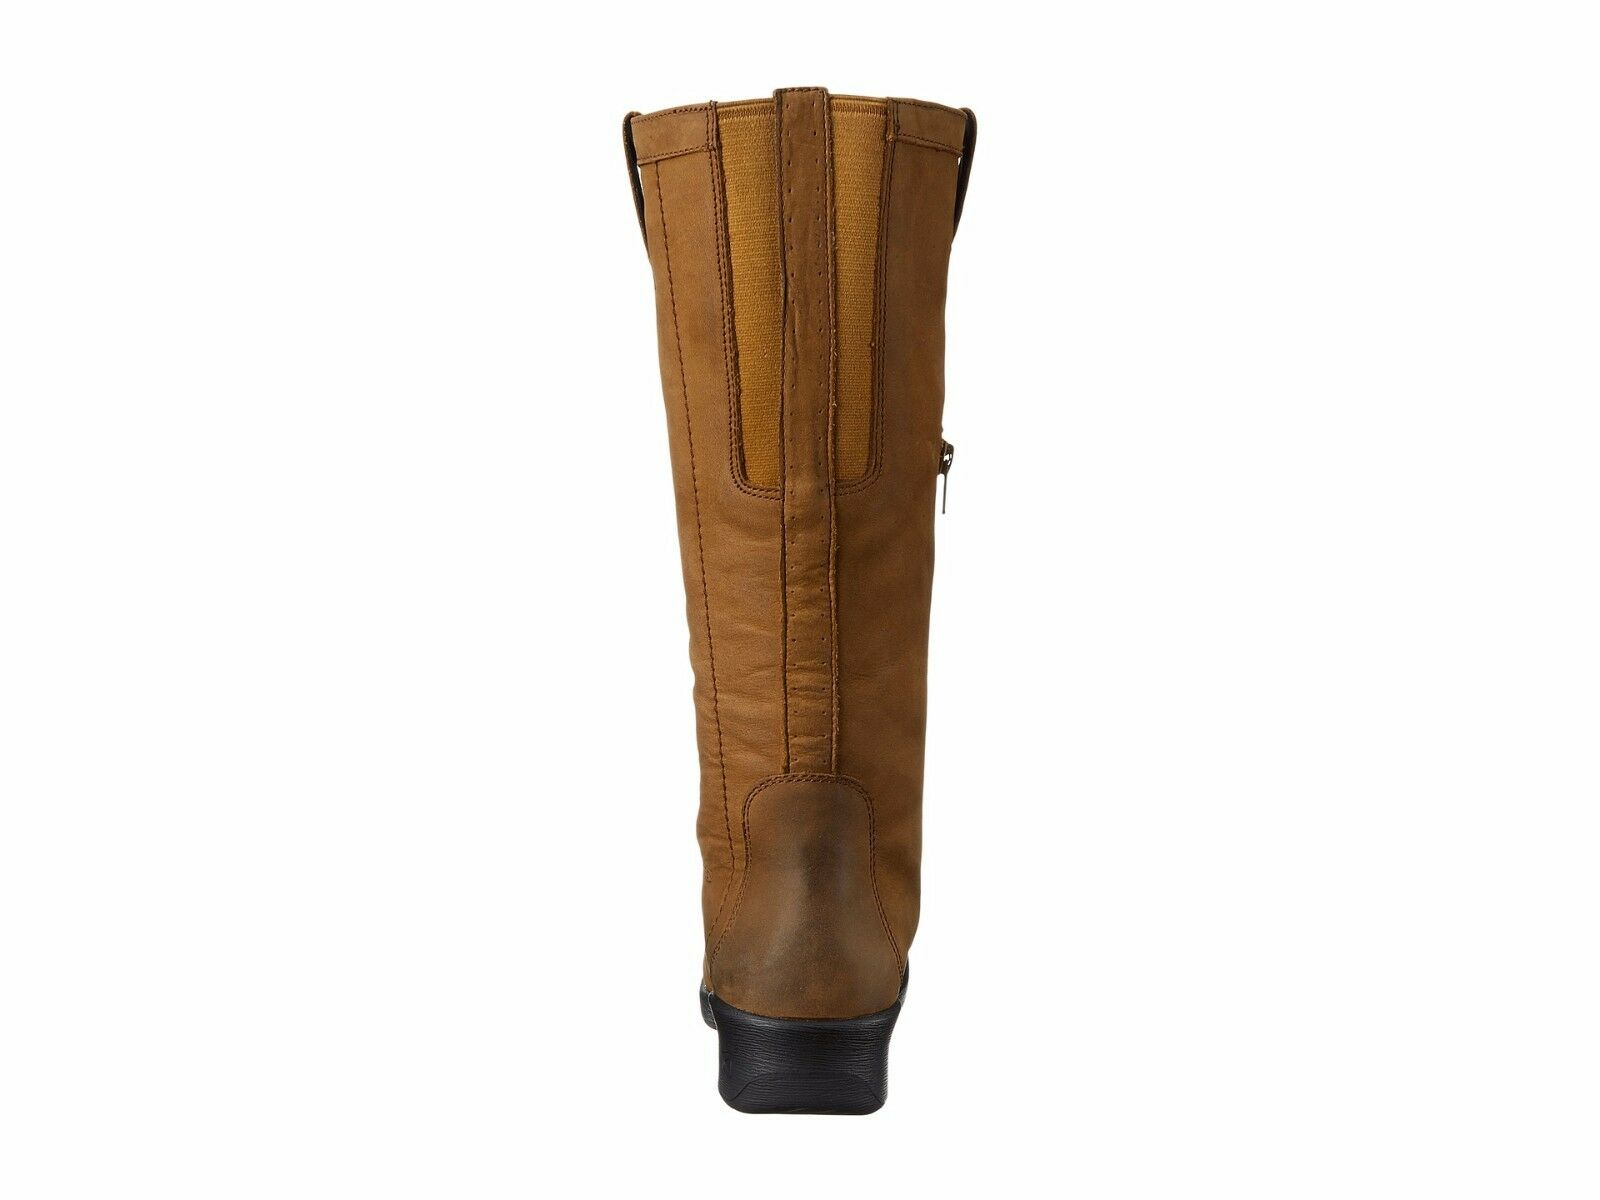 Keen Womens Tyretread Tall Side Zip Pull On Winter Snow Casual Riding Boots